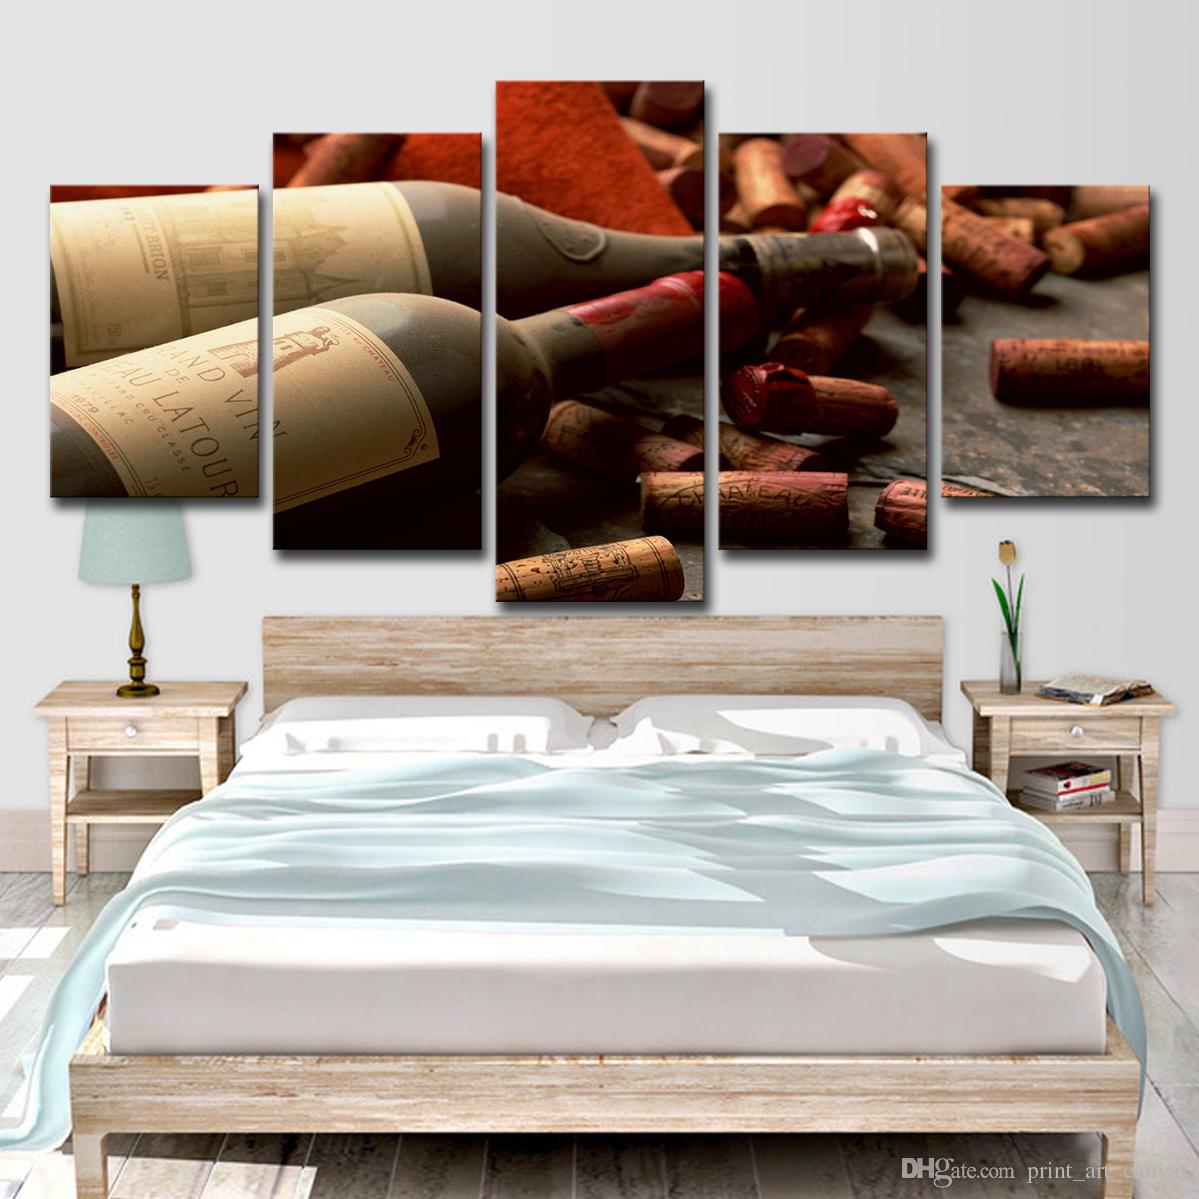 Latour Wall Decor Within Popular 2019 Home Decor Hd Prints Pictures Kitchen Canvas Wall Art Poster (View 10 of 20)